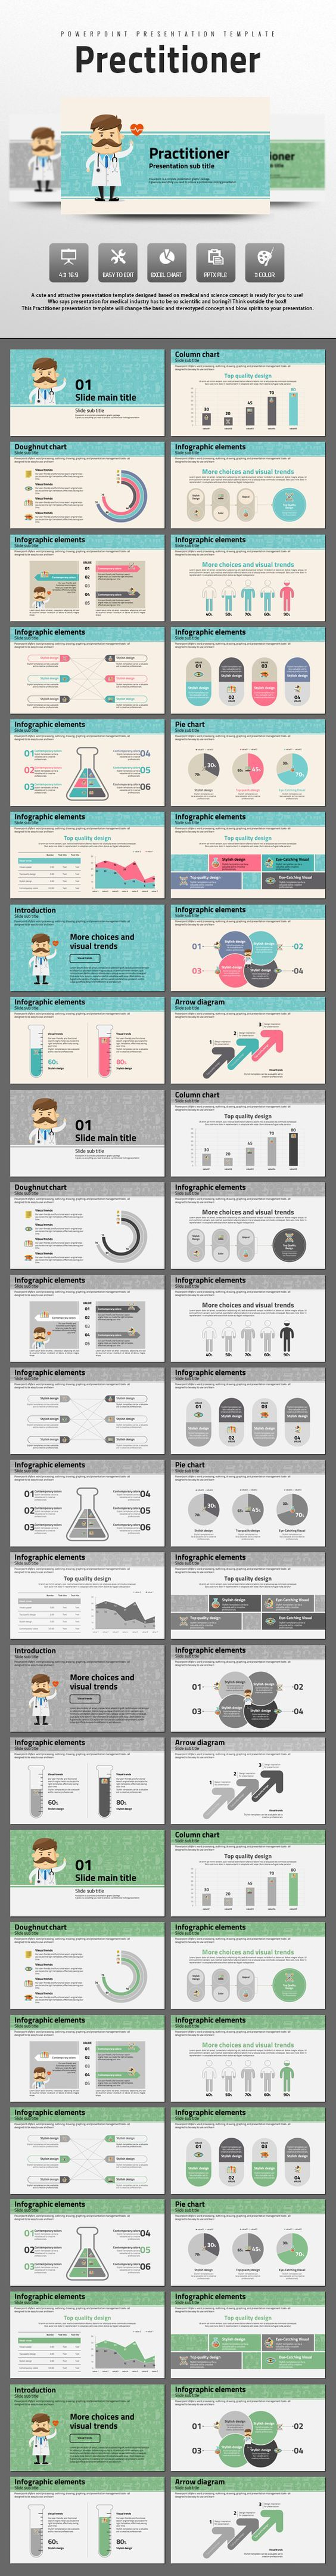 Practitioner (PowerPoint Templates):